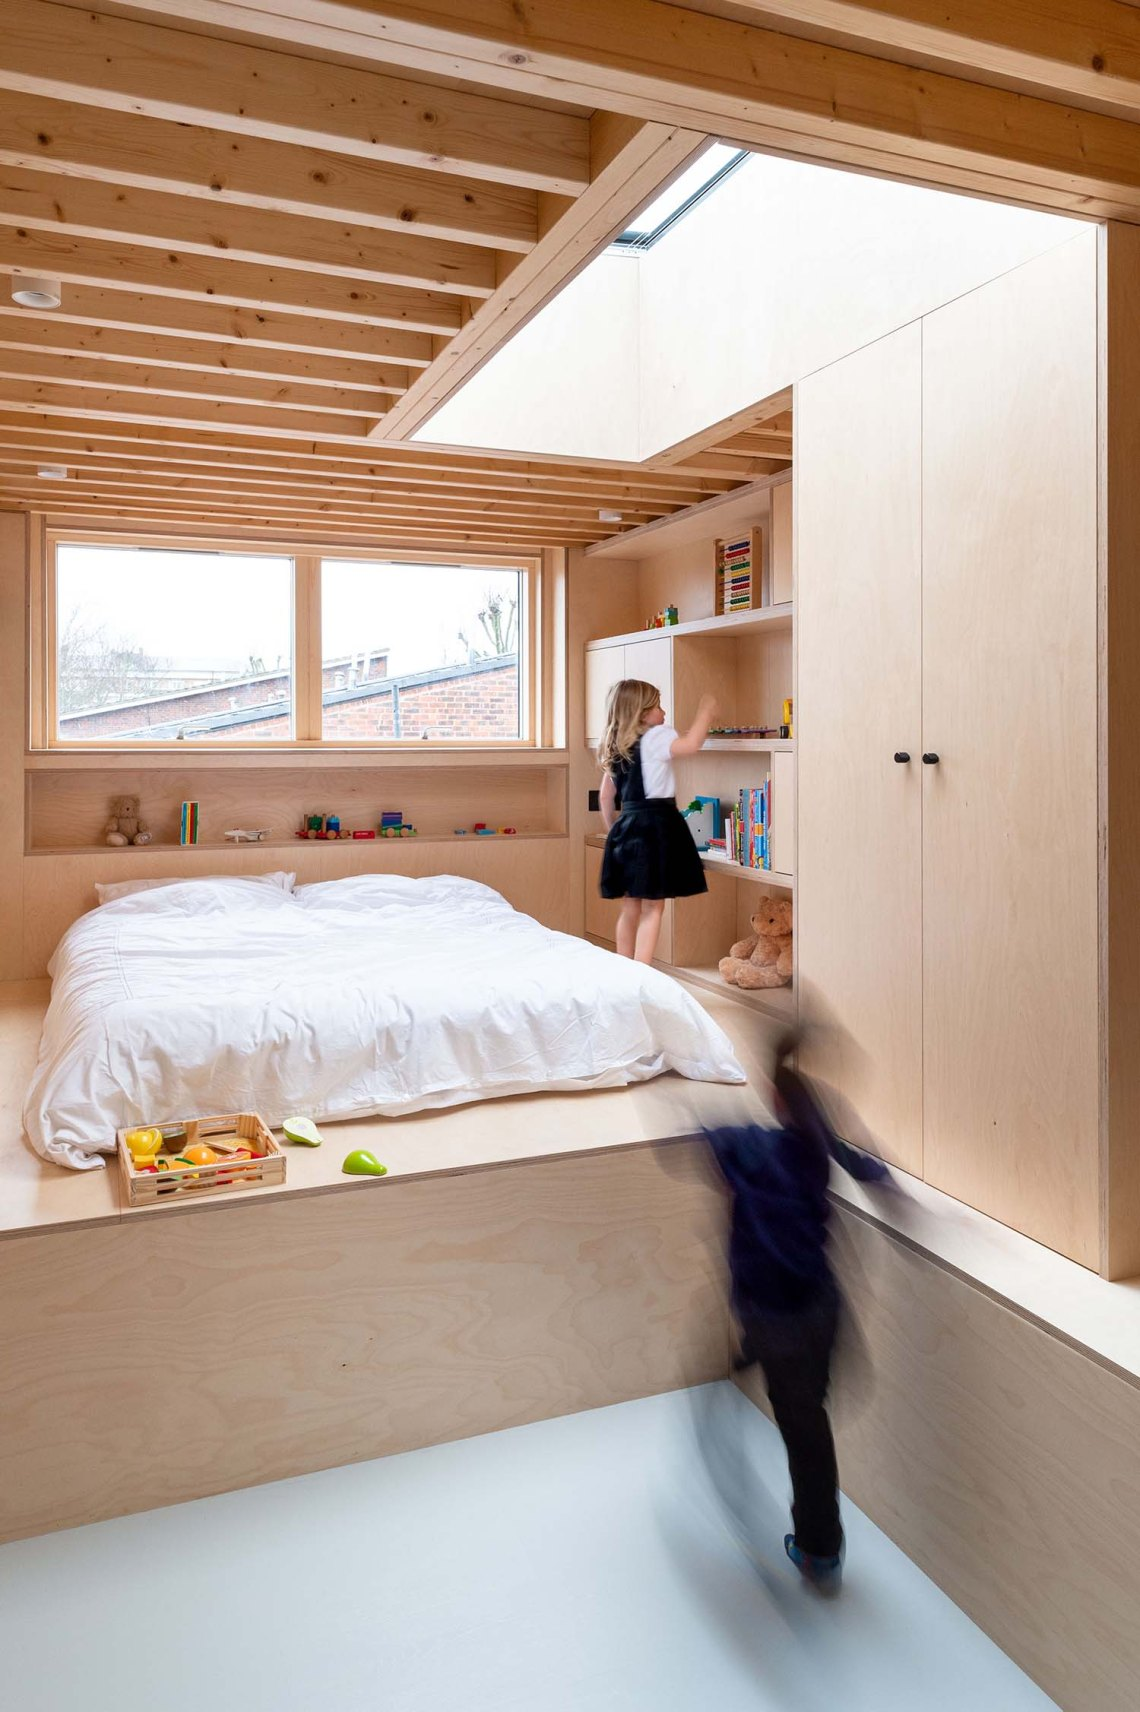 BVDS Architects Two and a half story house ply timber exposed joist rooflight kid running play loft extension